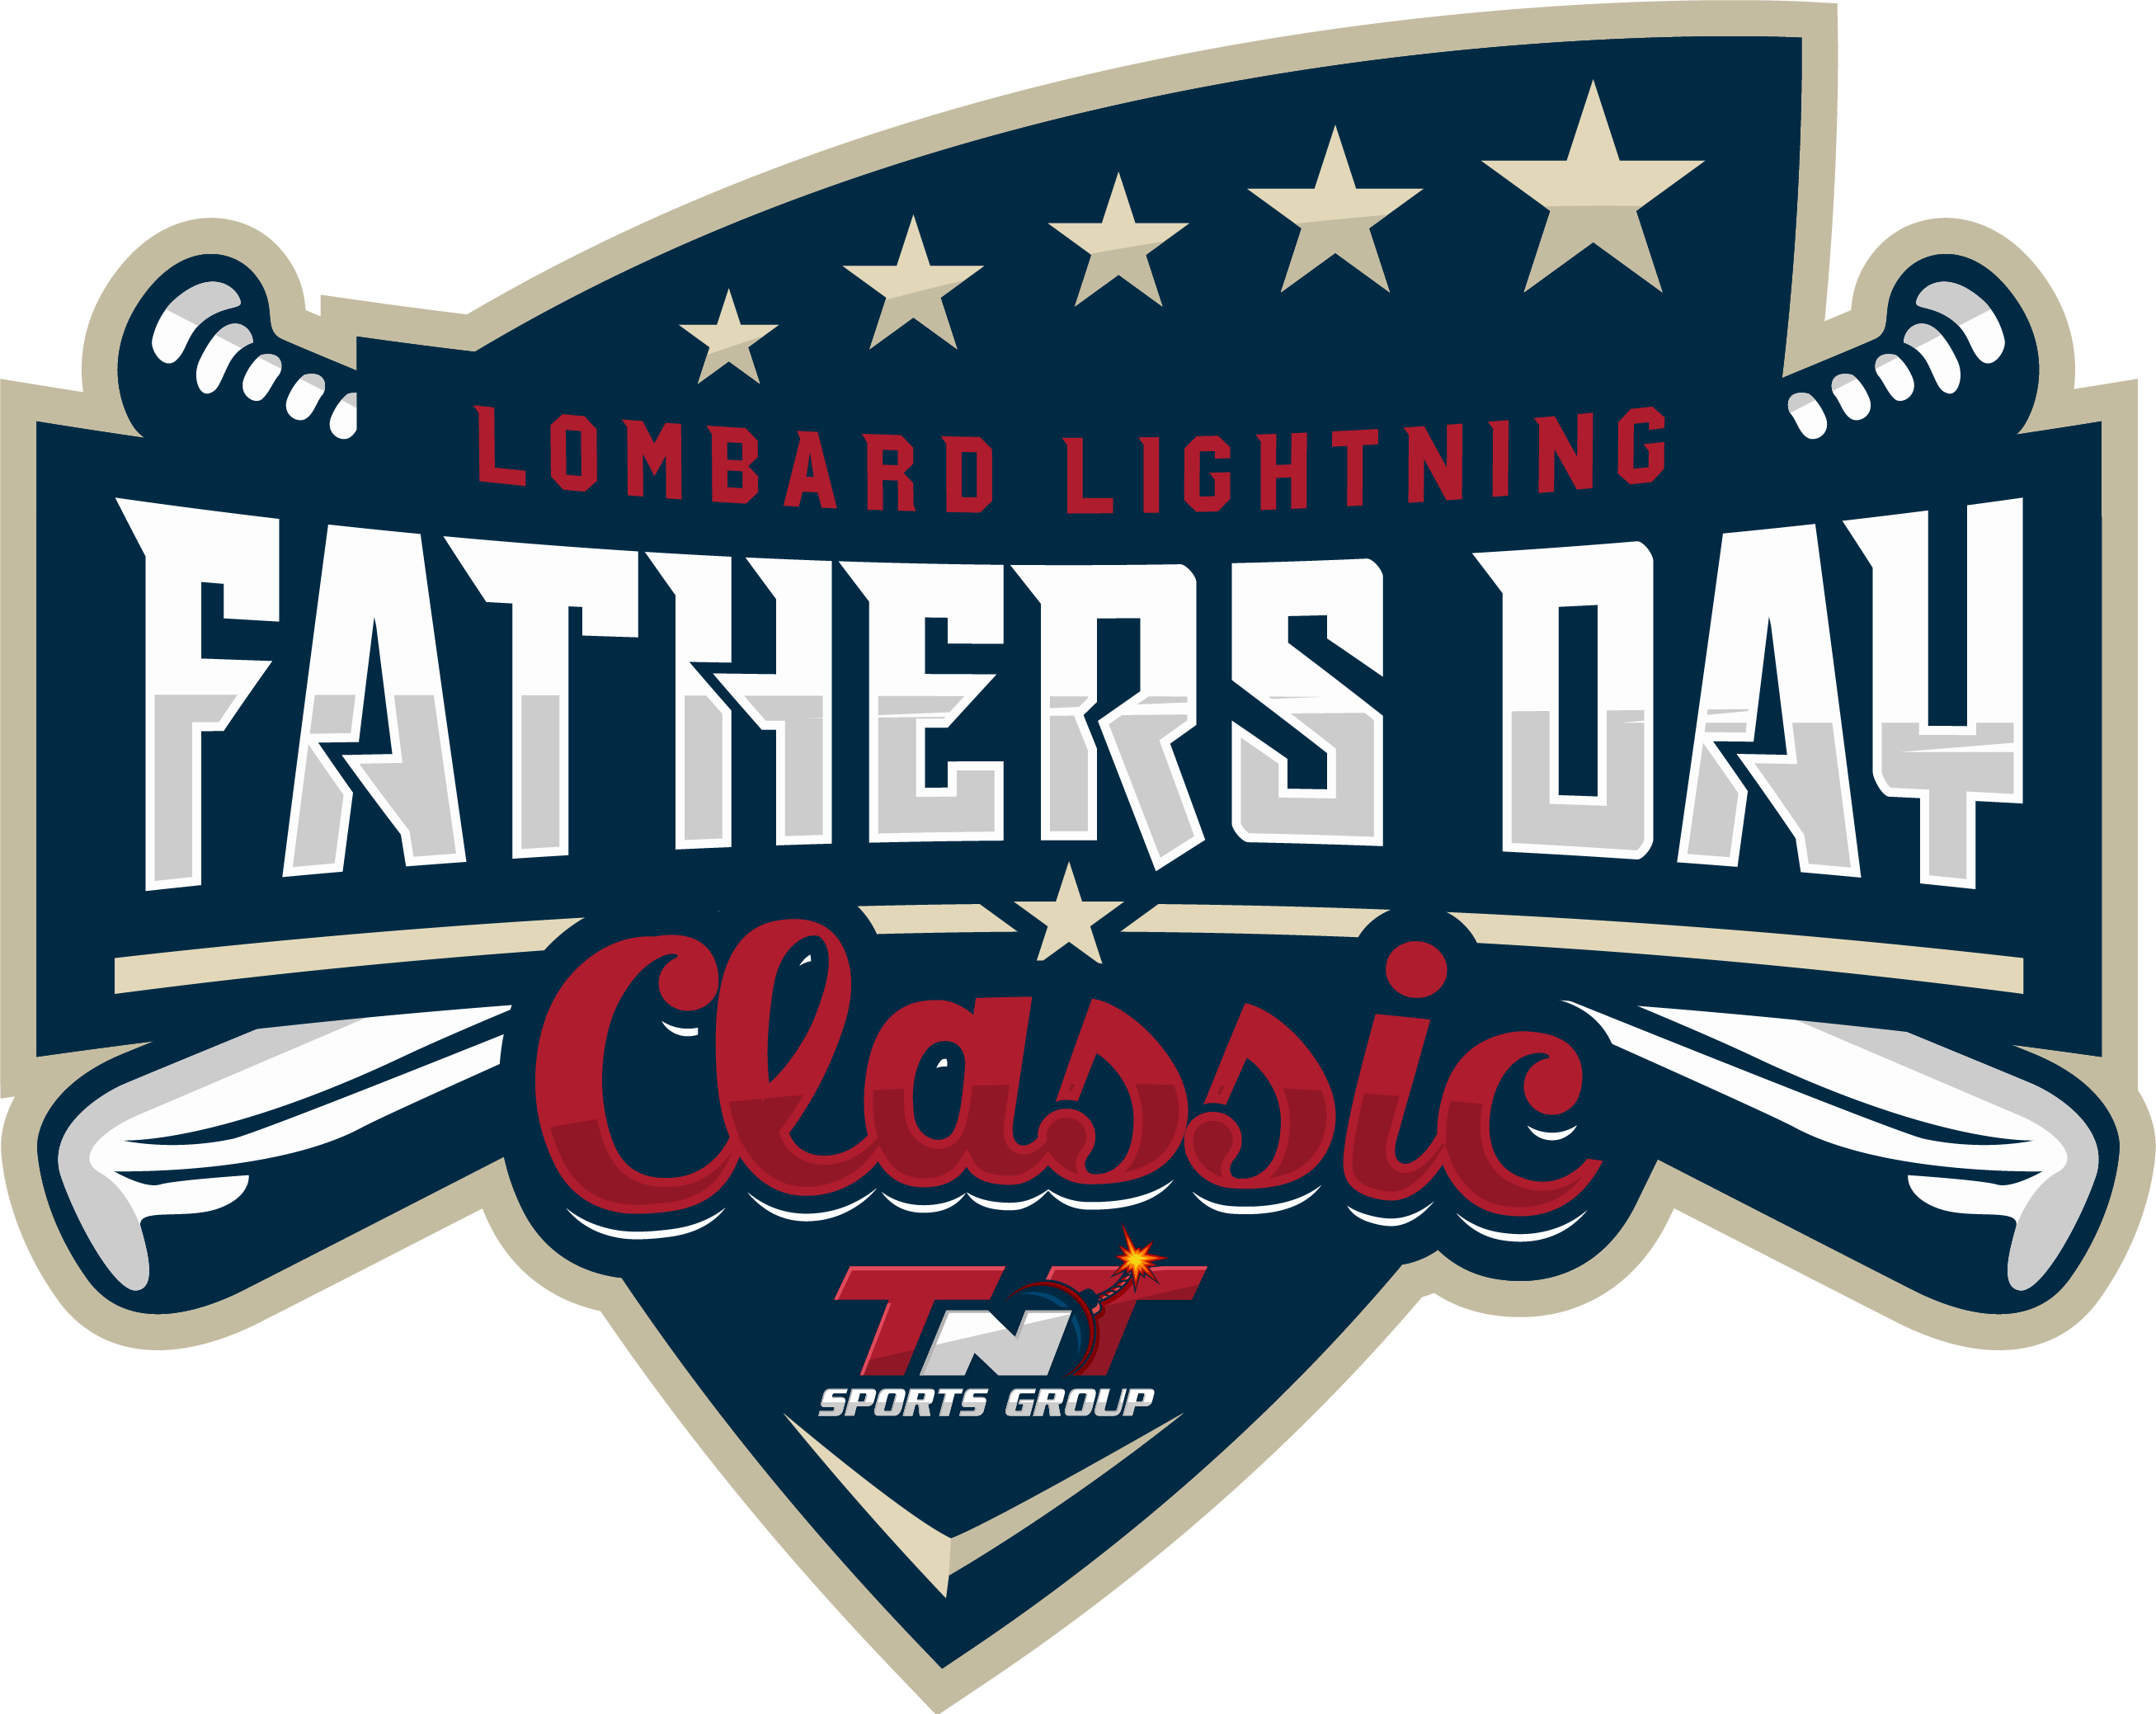 Lombard Lightning Father's Day Classic